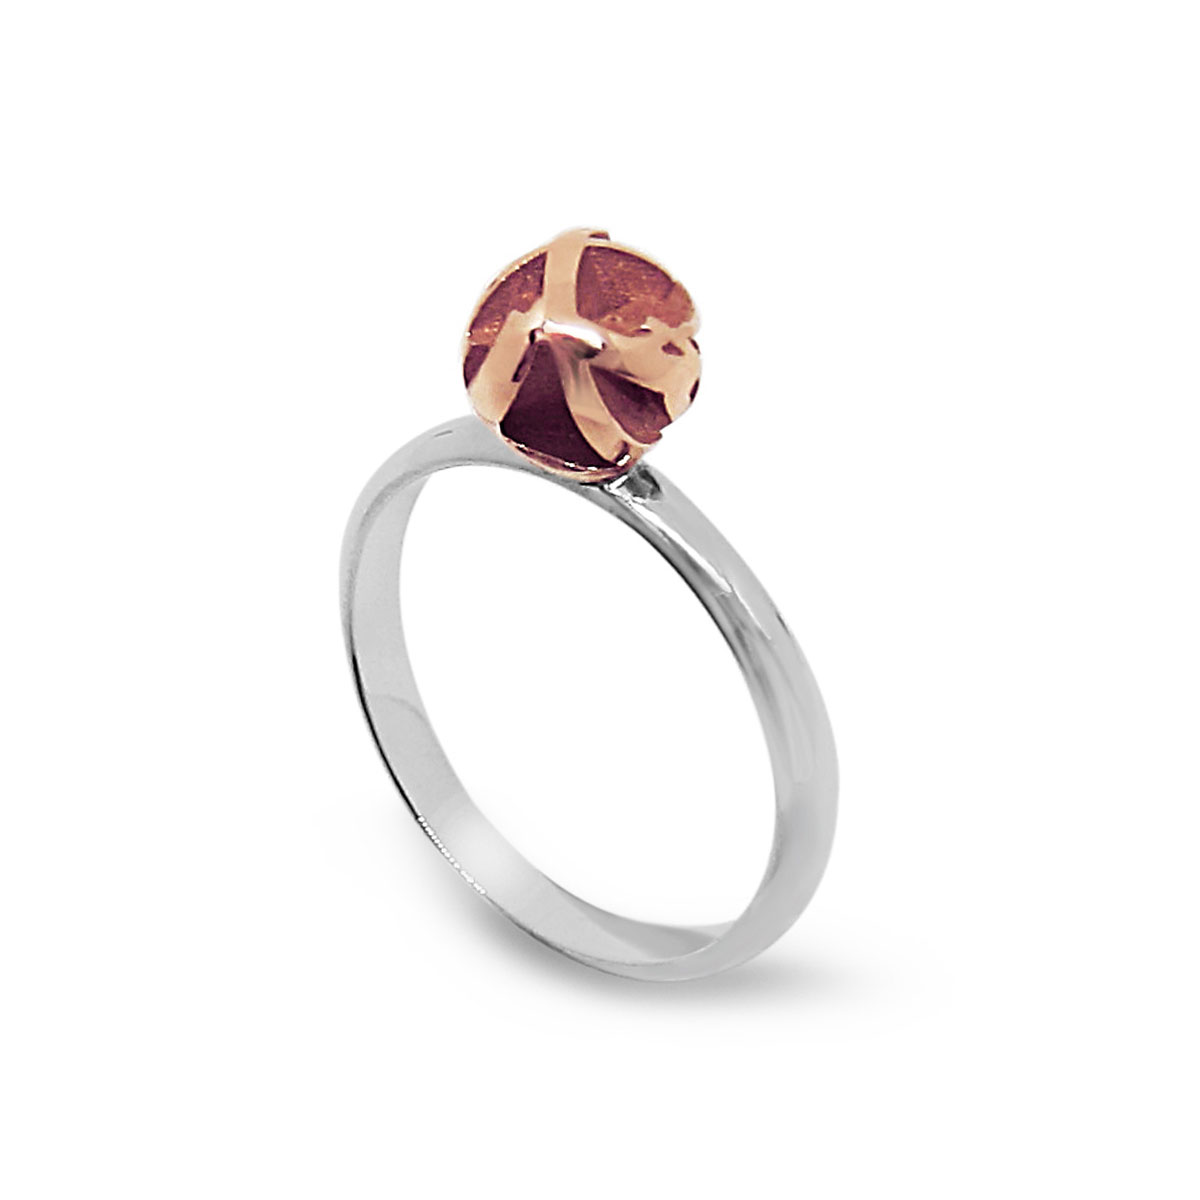 Rose gold and silver 3D print ring  Fairina Cheng Jewellery